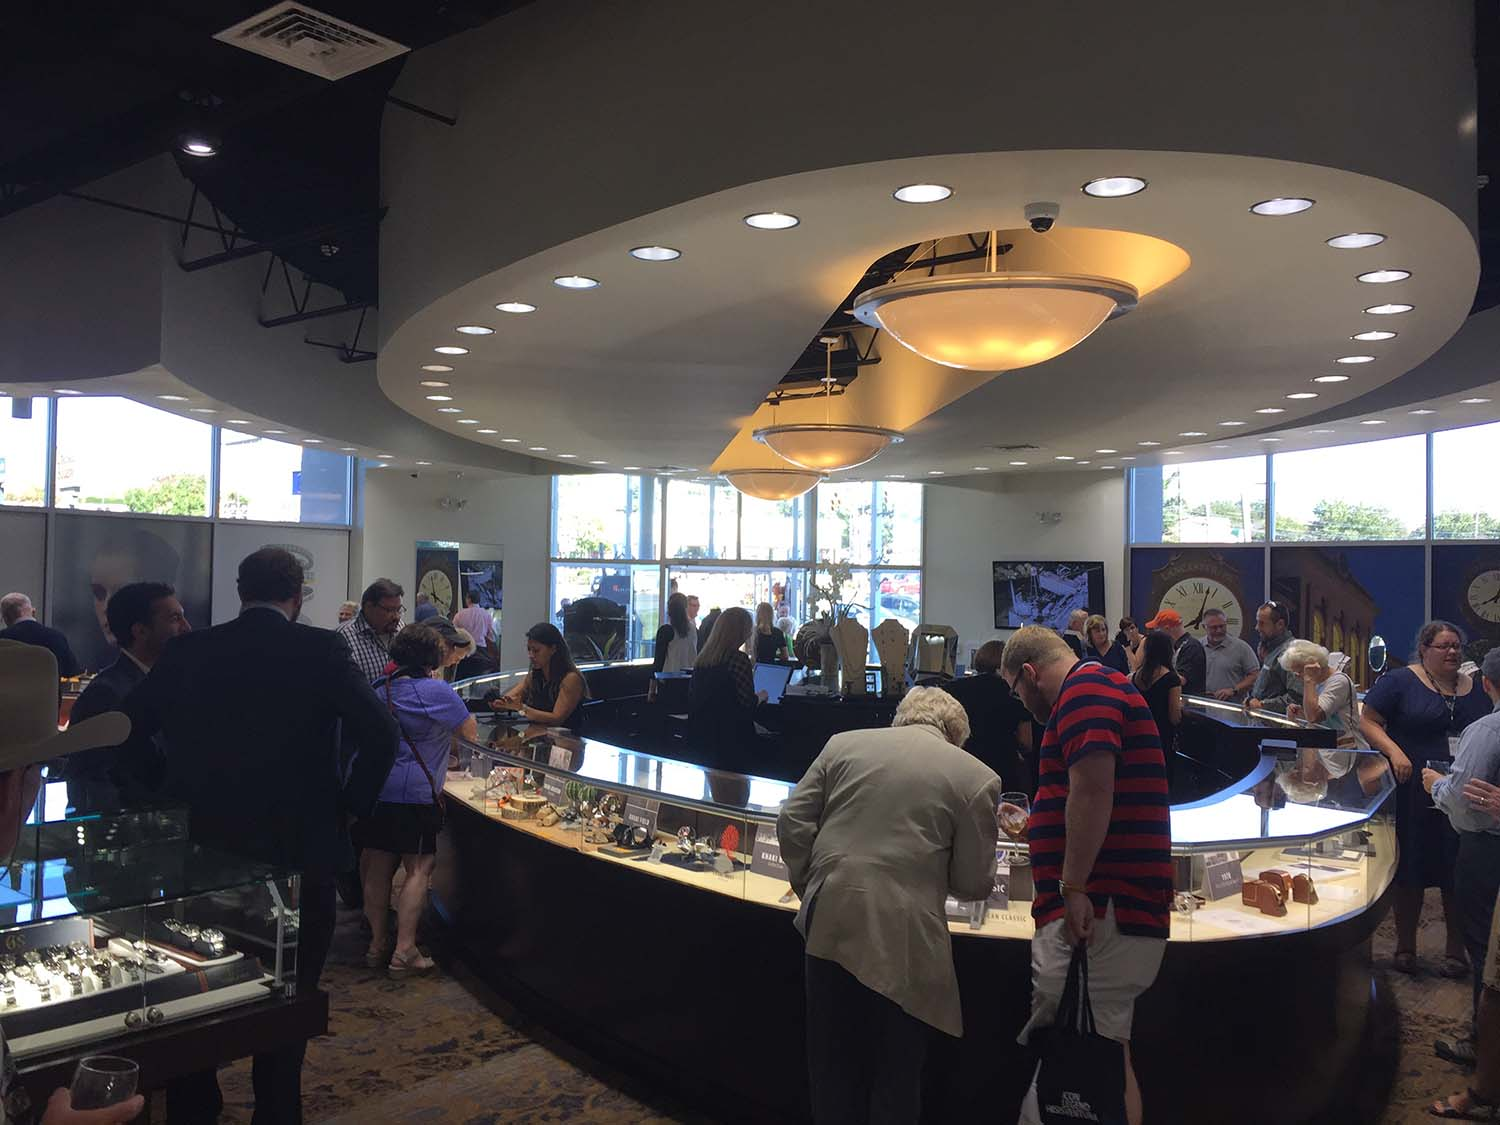 Visitors viewing new and old Hamilton wristwatches and artifacts in the main showroom at Brent L. Miller Jewelers & Goldsmiths in Lancaster, PA.